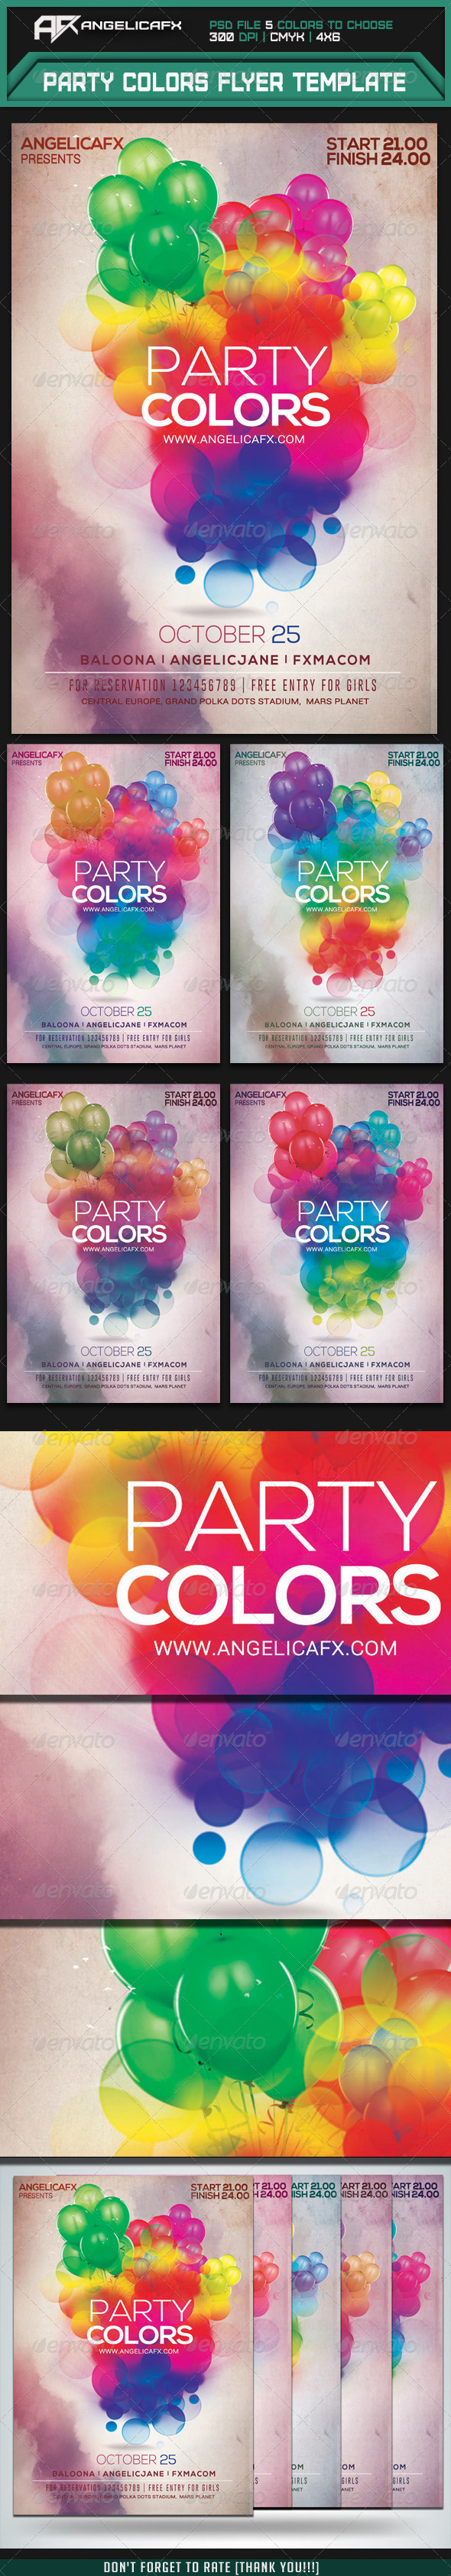 GraphicRiver Party Colors Flyer Template 7336496